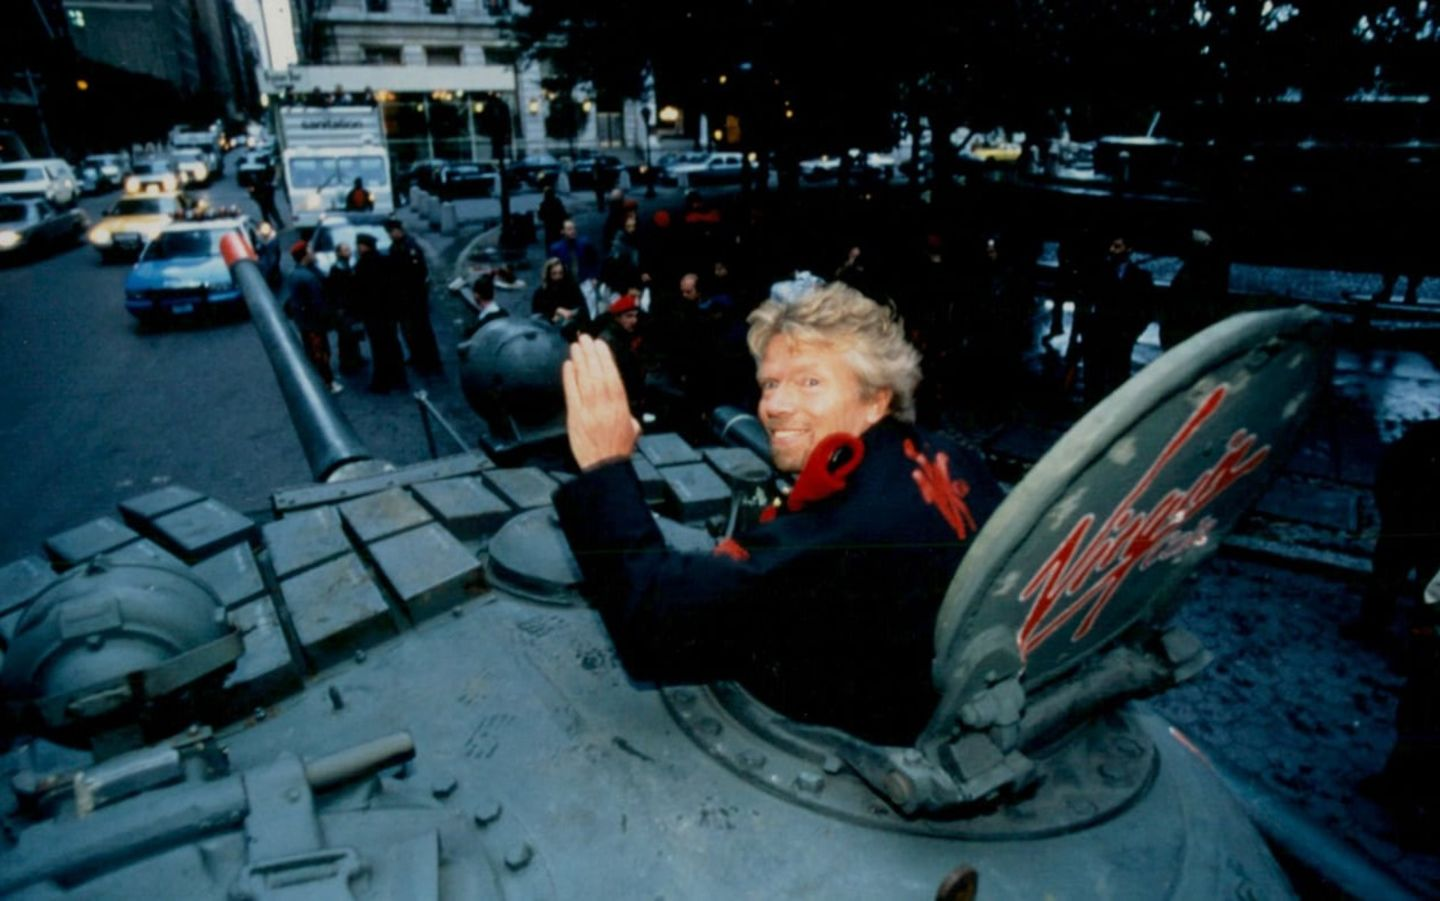 Richard Branson in a tank waving